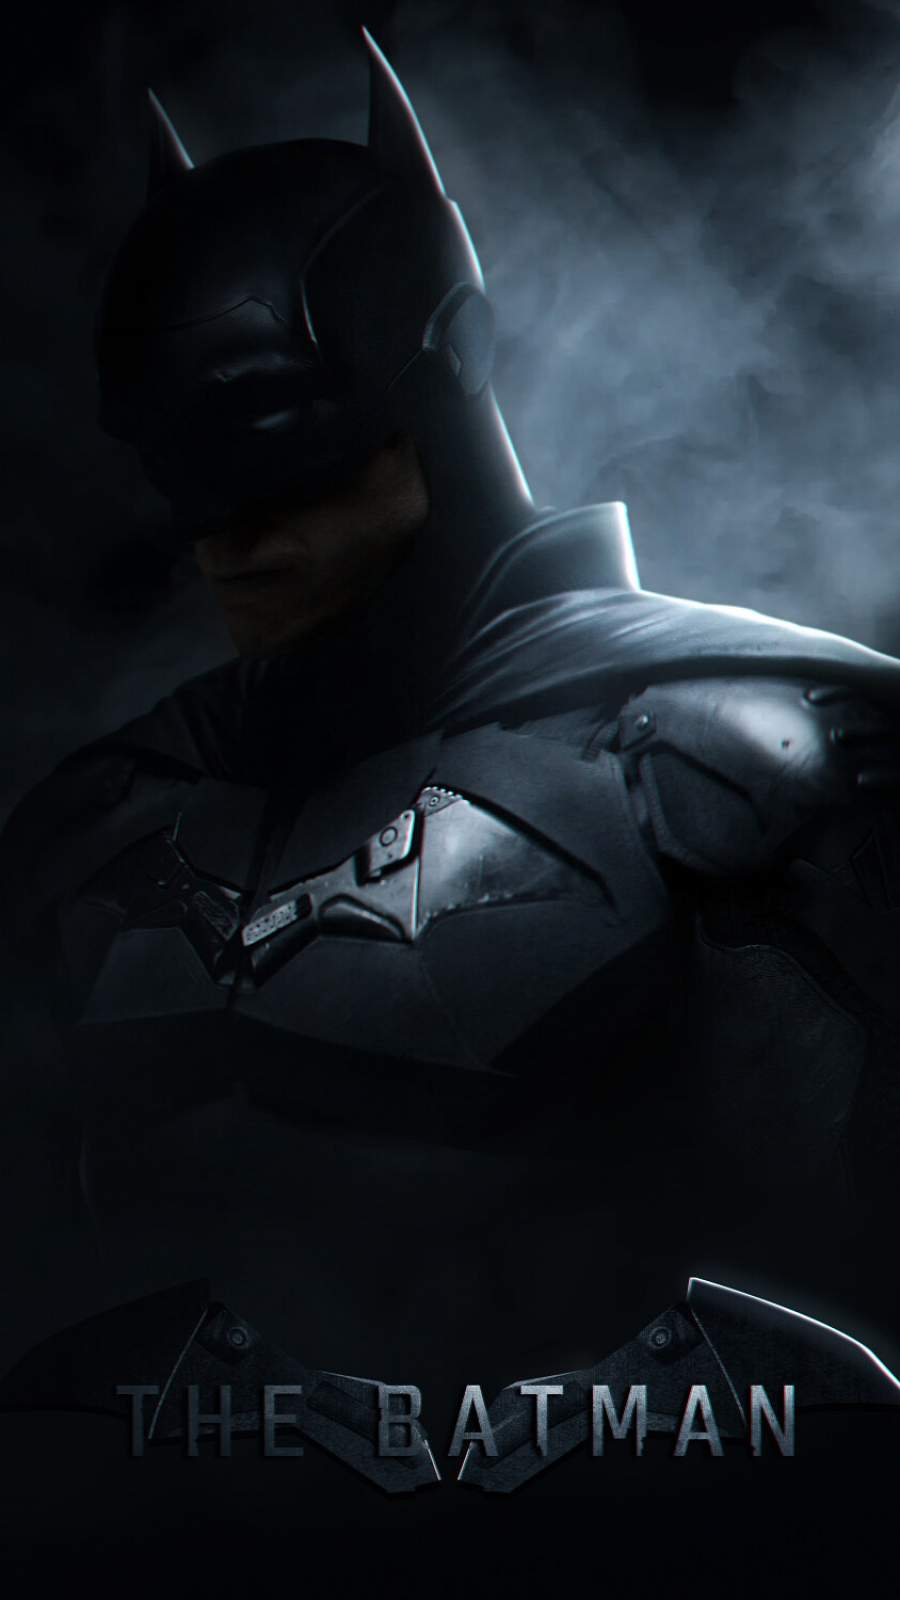 The BATMAN iPhone Wallpaper